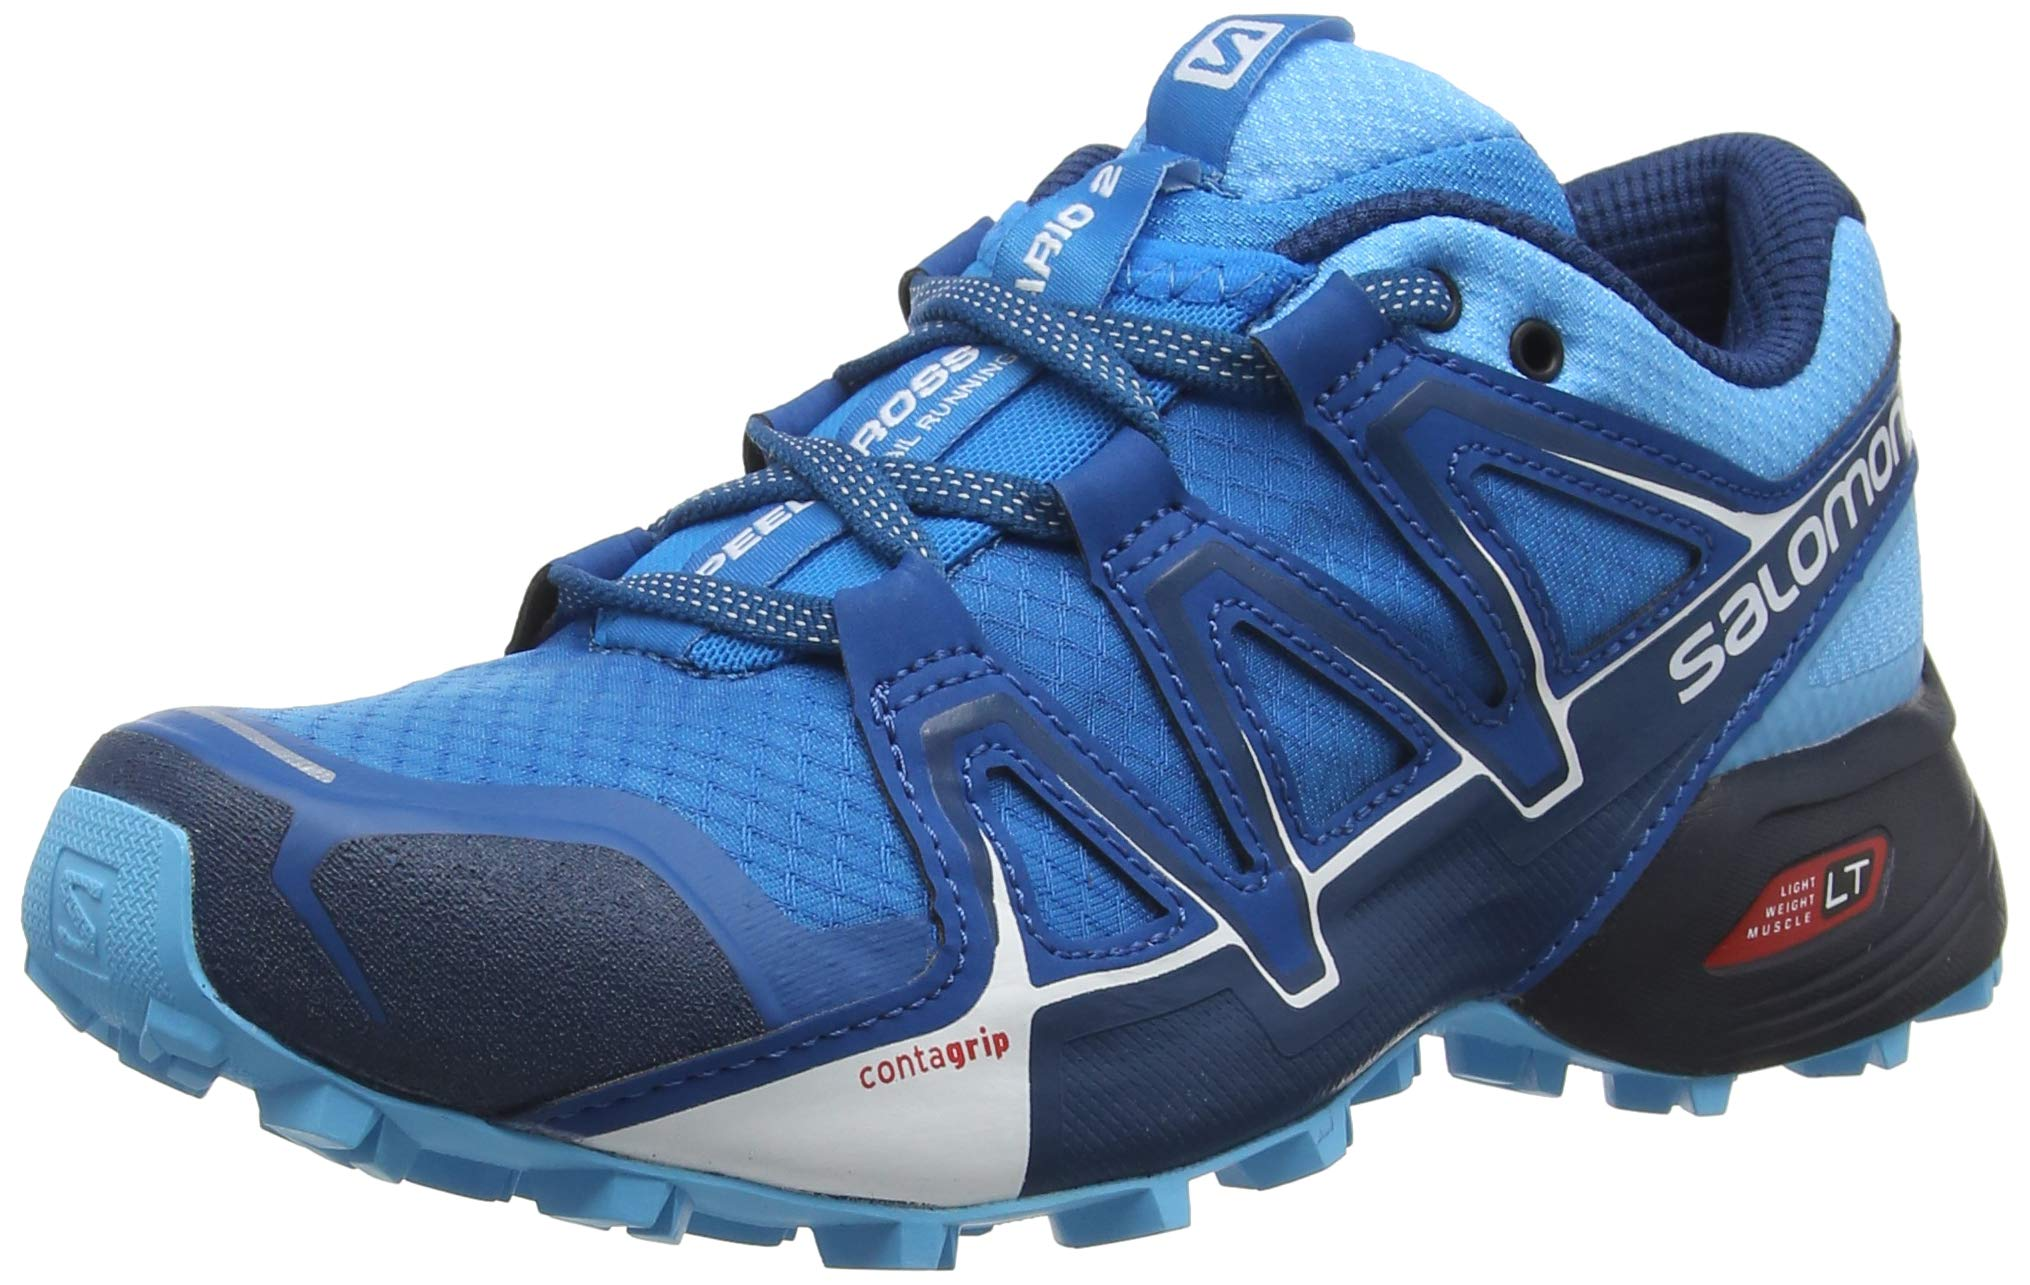 quality design d669b 131c9 Salomon Damen Speedcross Vario 2 Trailrunning-Schuhe, Schwarz